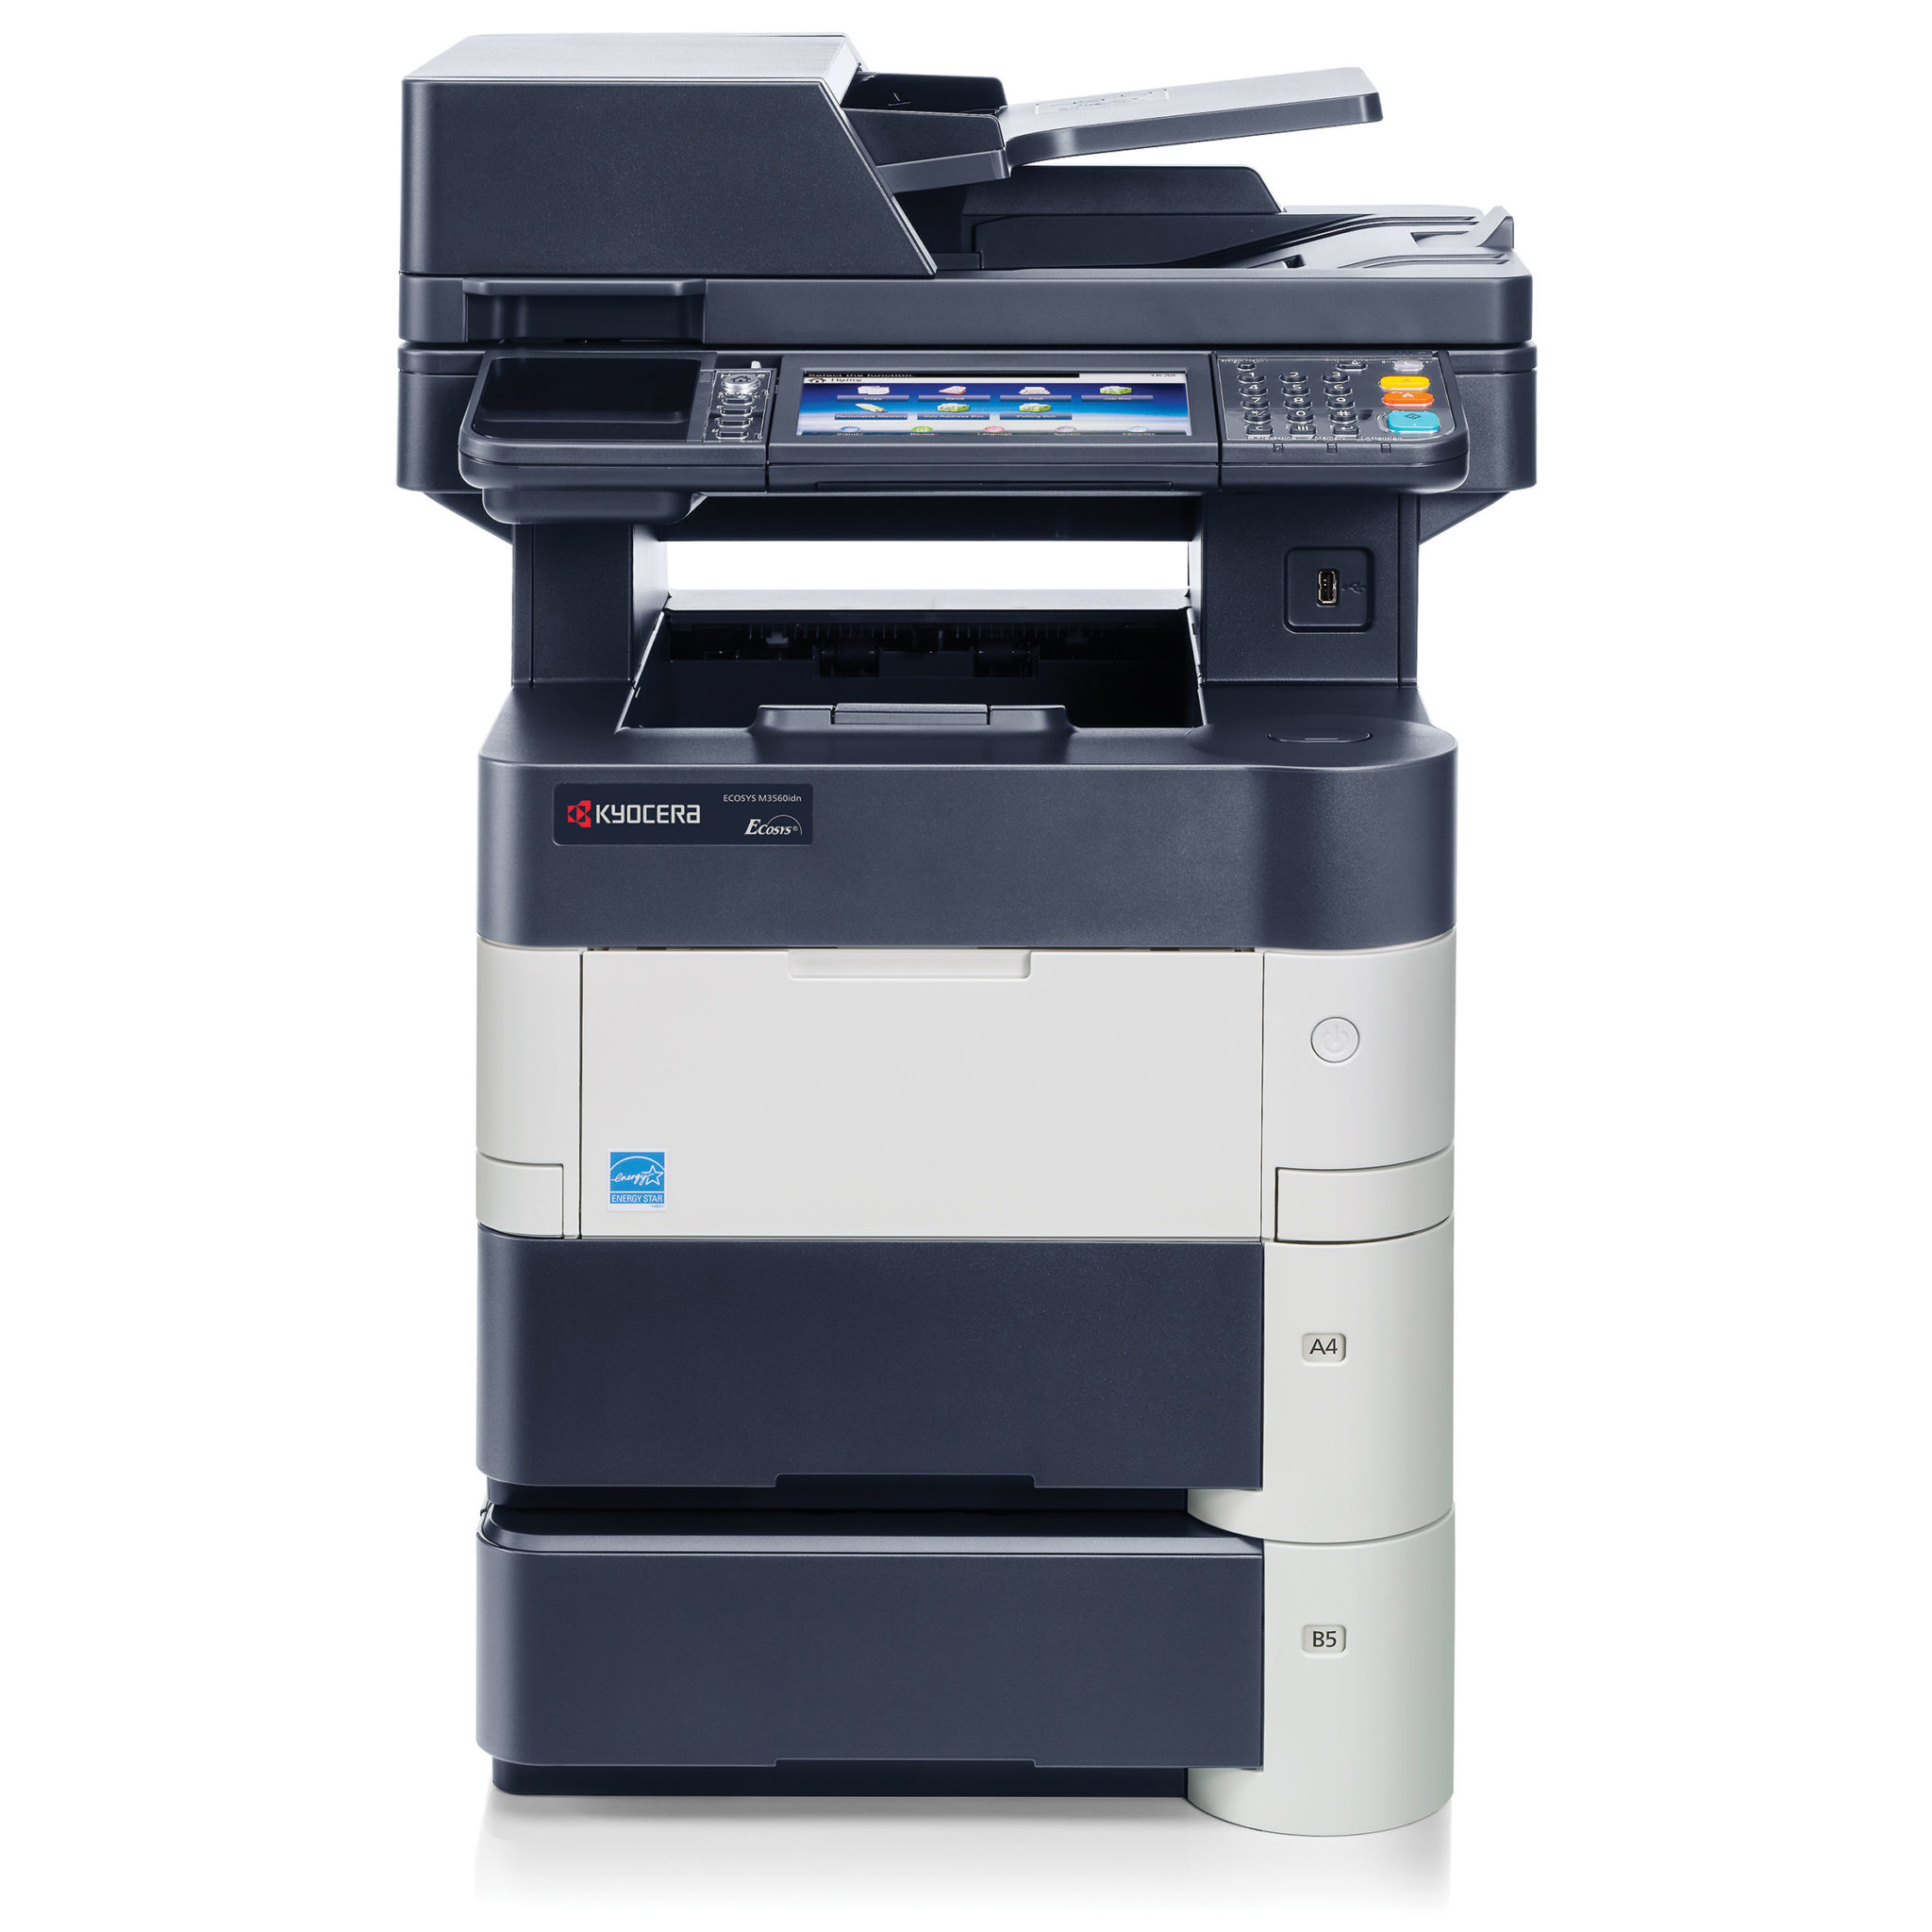 ECOSYS M3560idn | Copiers | Printers | Ink | Toner | Repair